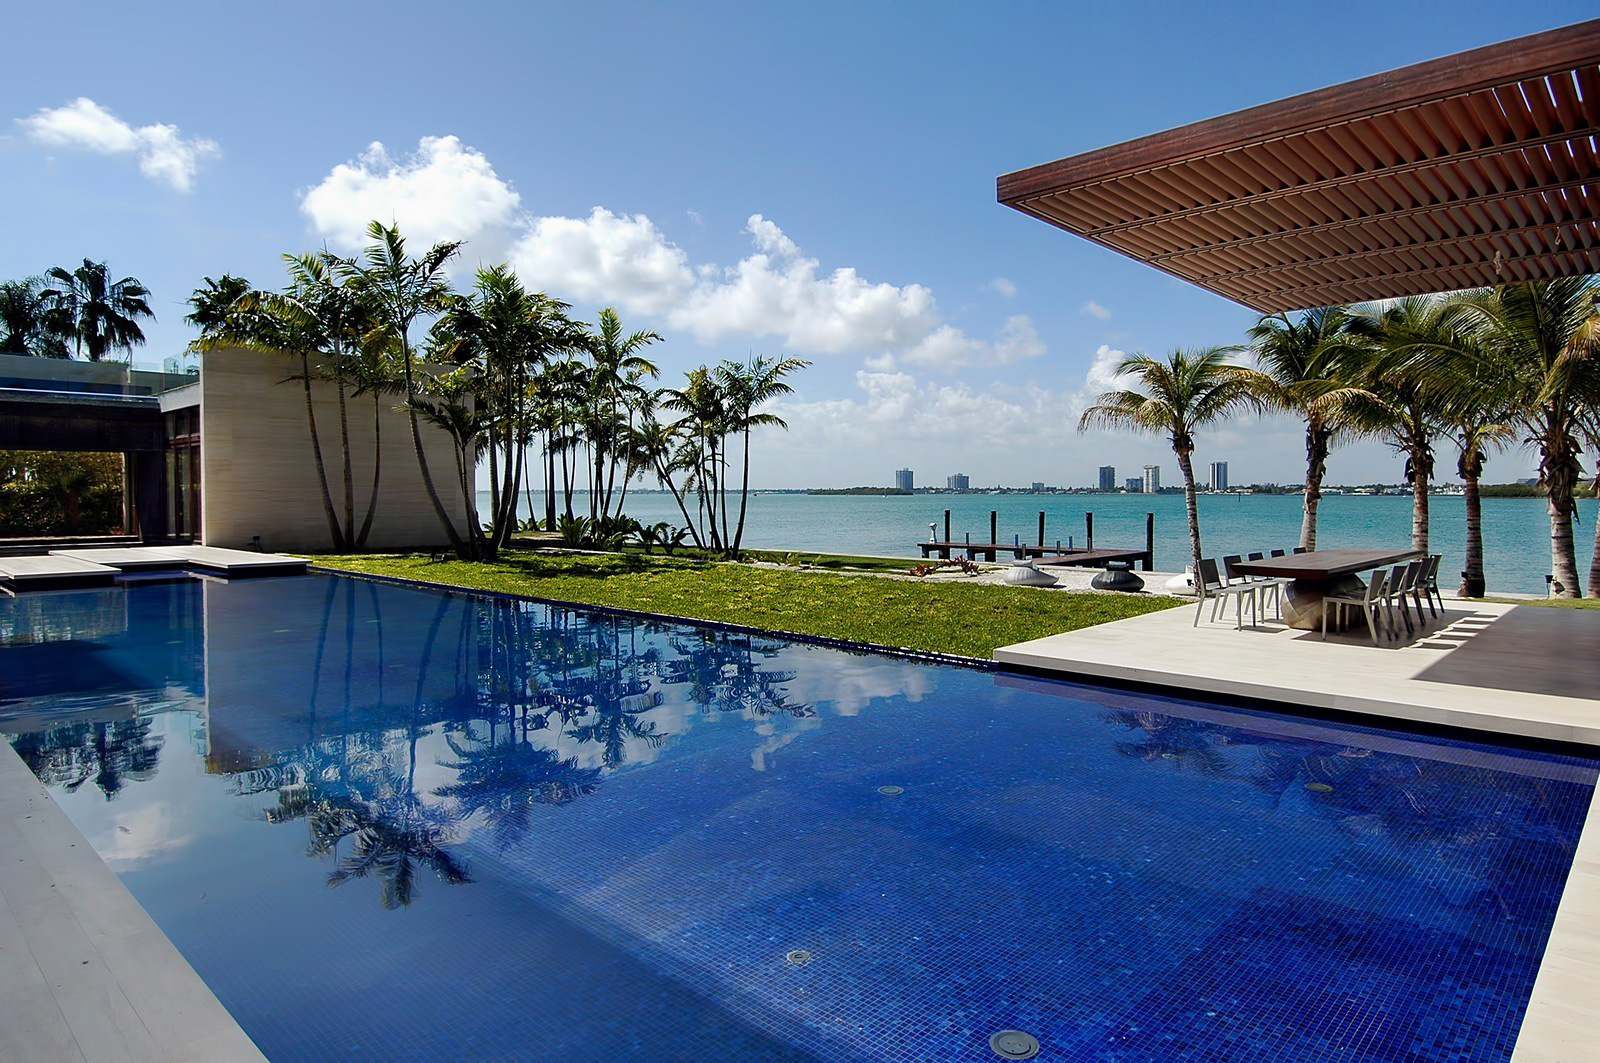 3 Indian Creek Island Luxury Estate - Miami Beach, FL, USA